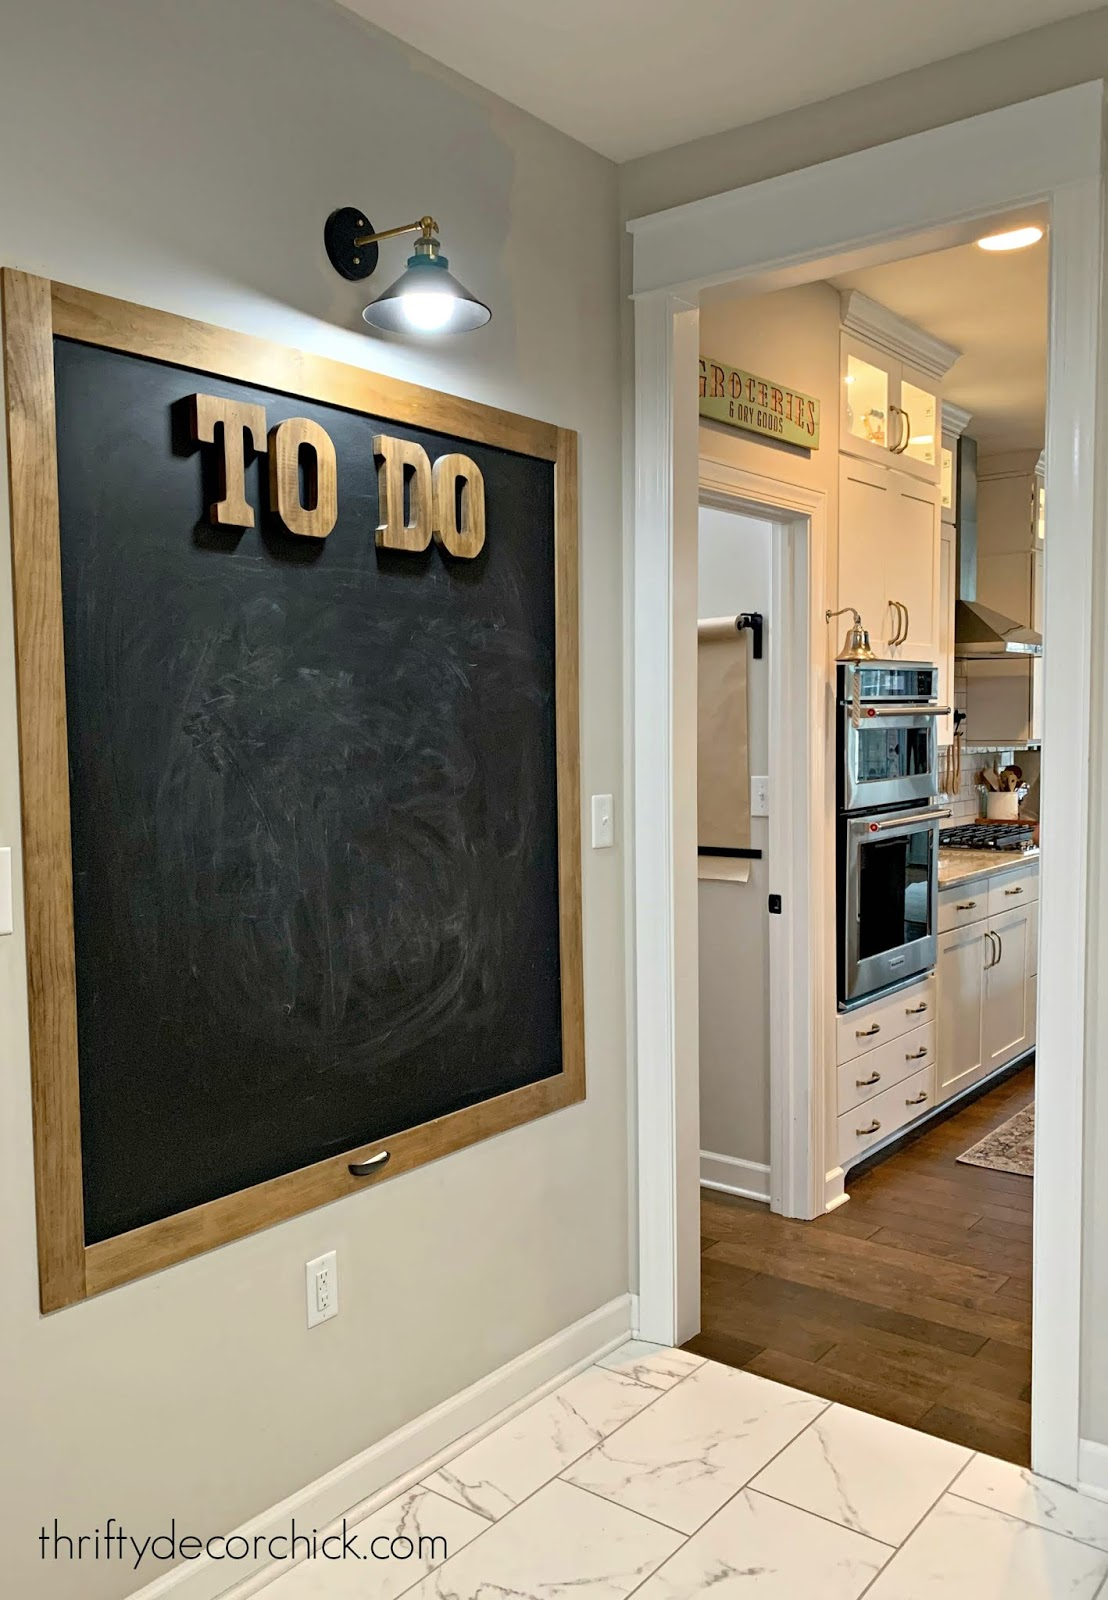 Large DIY chalkboard in mud room